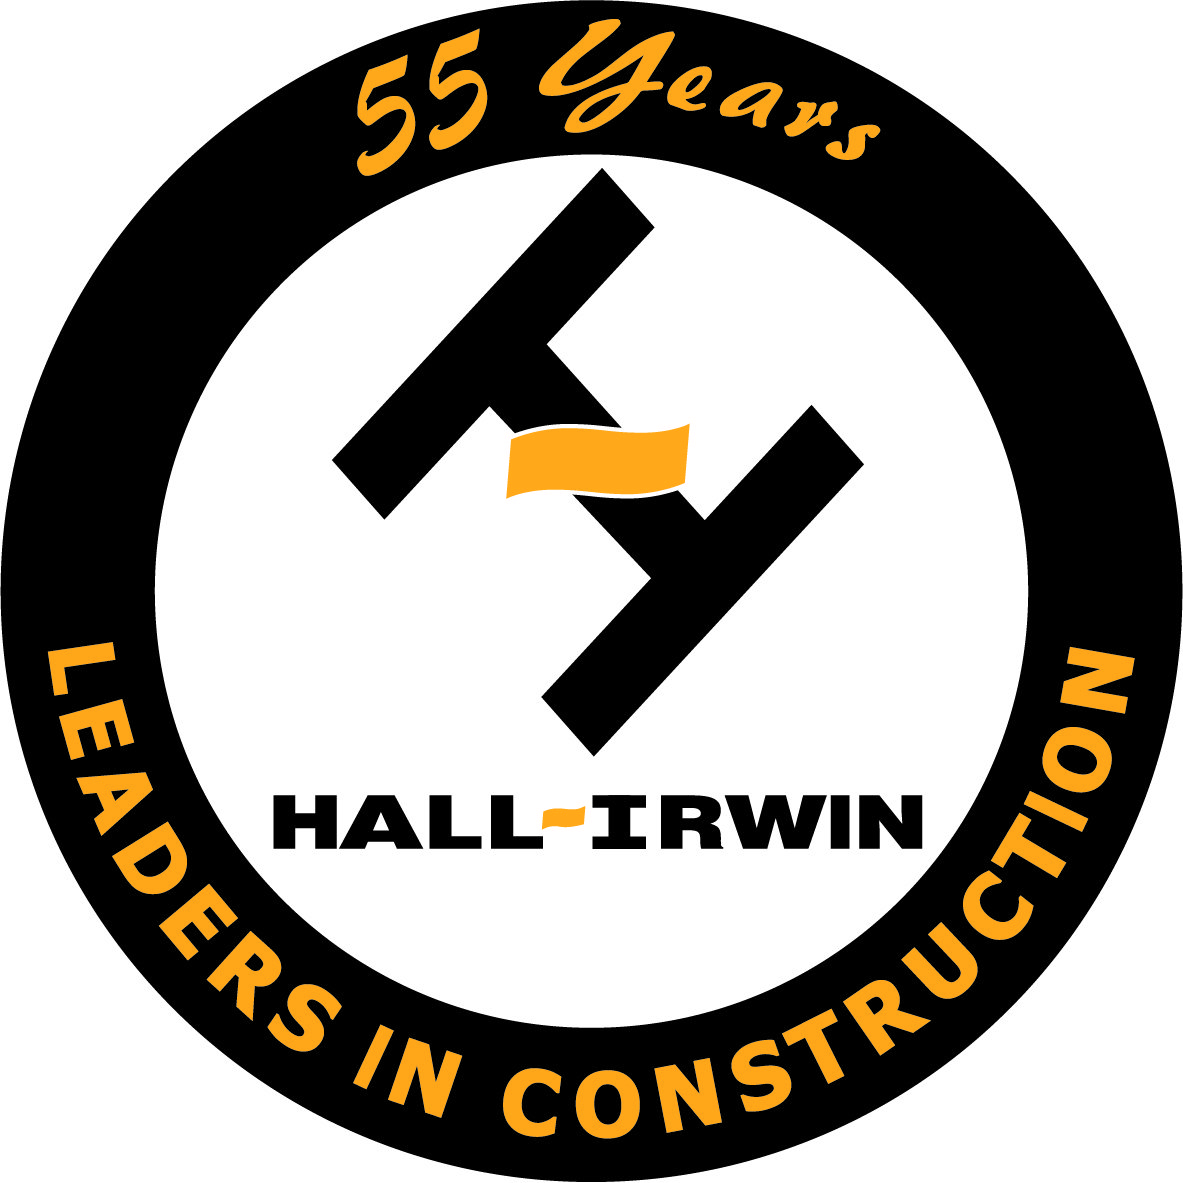 Hall-Irwin Corporation thumbnail